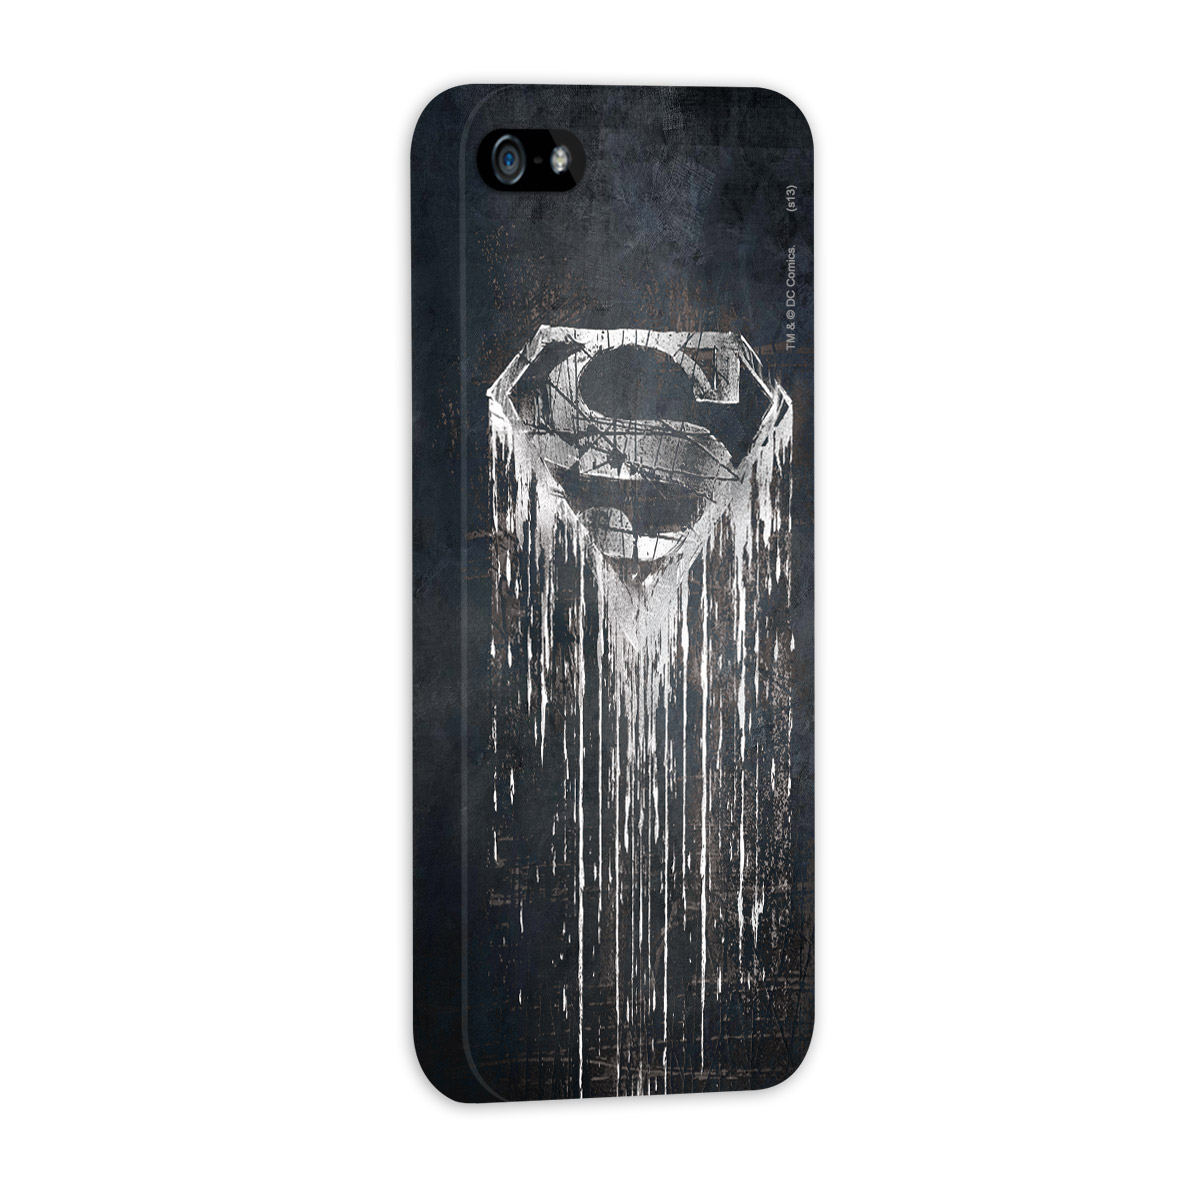 Capa de iPhone 5/5S Superman - Steel Melting